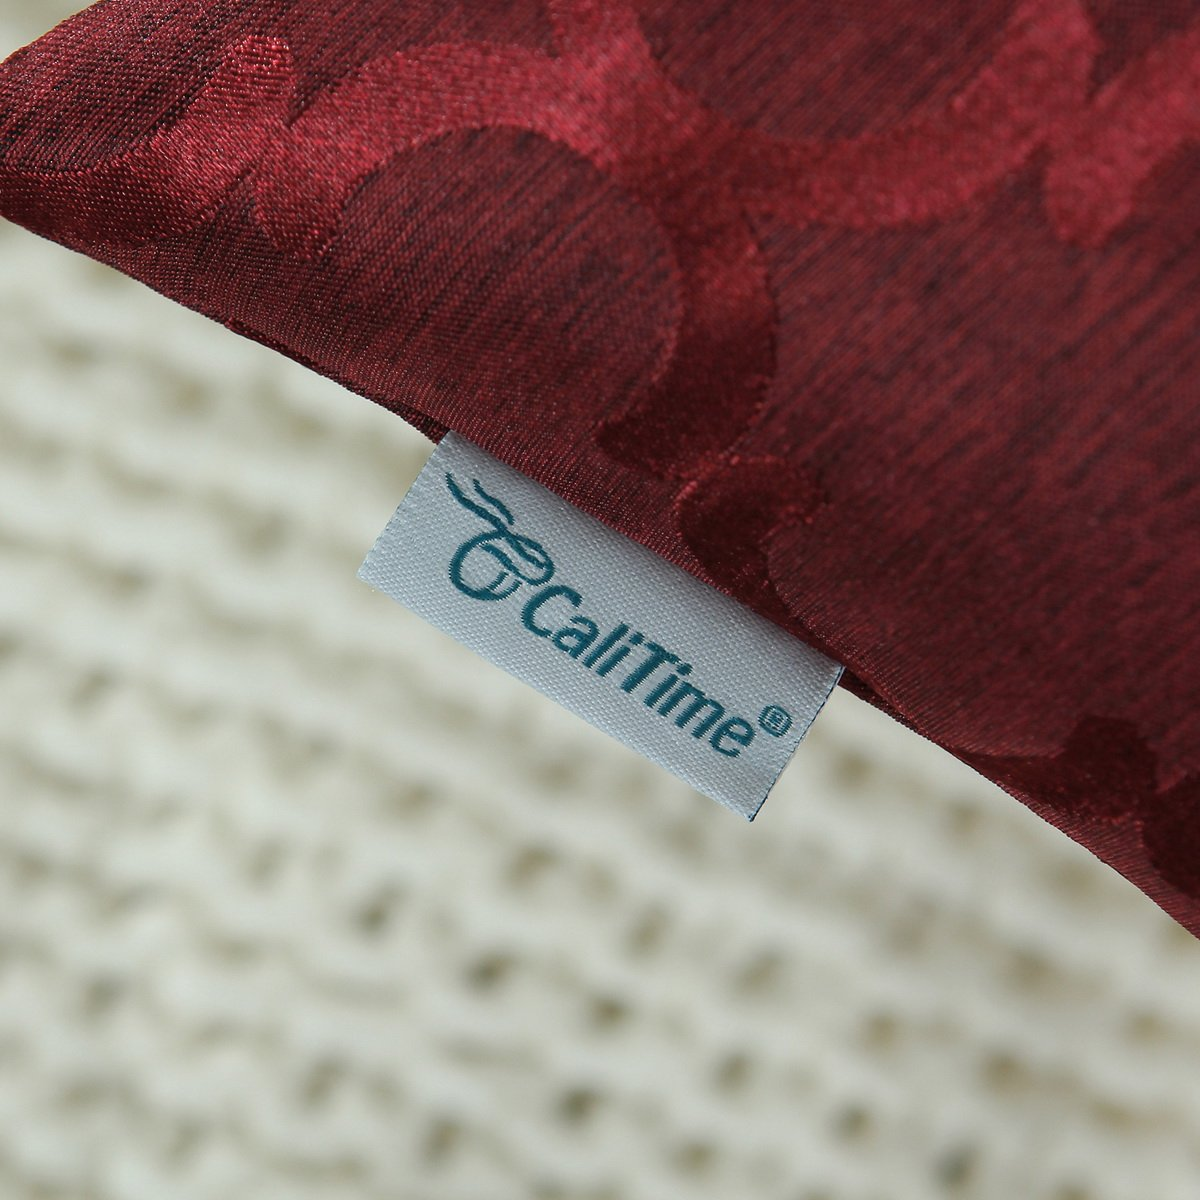 Calitime Cushion Cover Throw Pillows Case, Jacquard Quarterfoil Geometric Damask Accent, Two Sides, 18 by 18 Inches, Burgundy